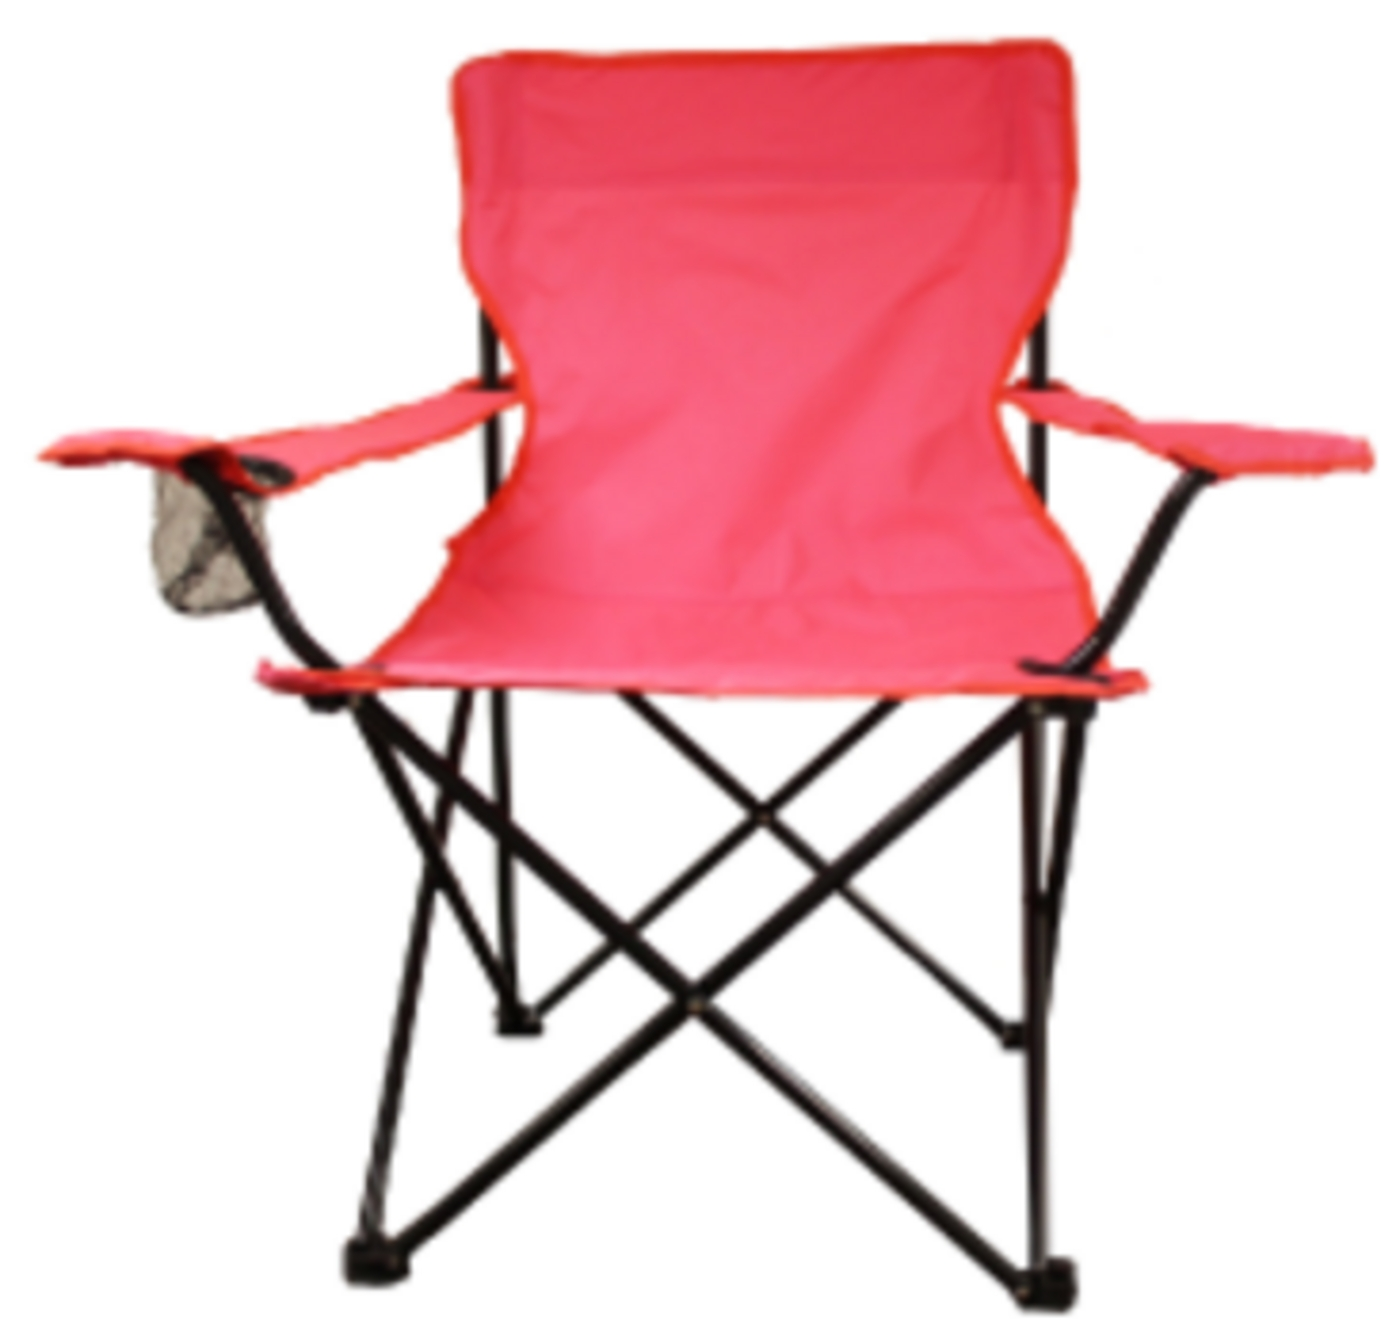 yeti folding chair covers for baby wfs with armrest fontana sports